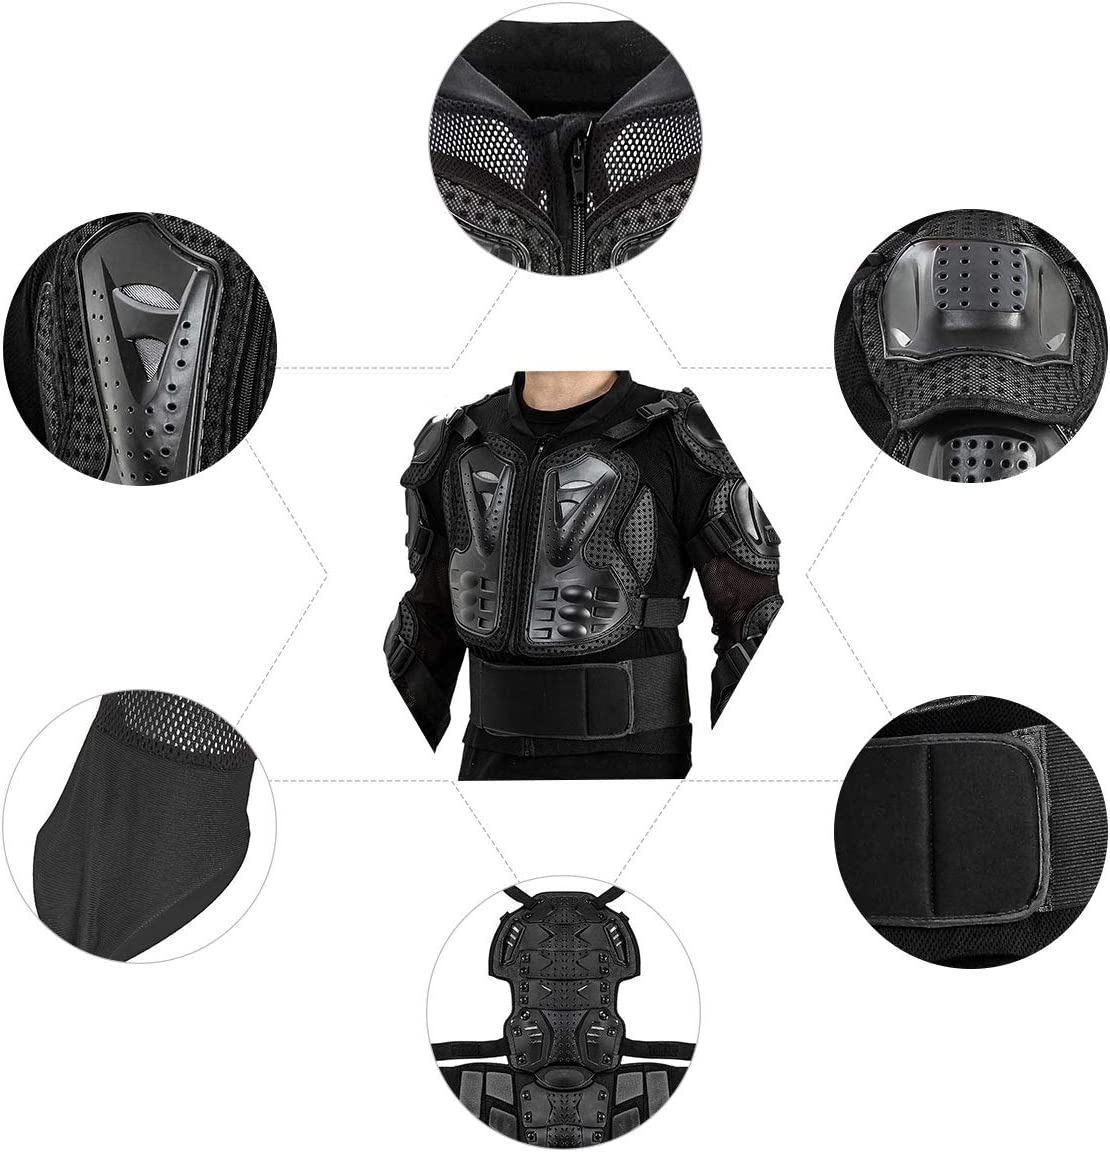 Motorcycle Full Body Protective Armor Pro Street ATV Guard Shirt Jacket with Back Protection Schwarz, L